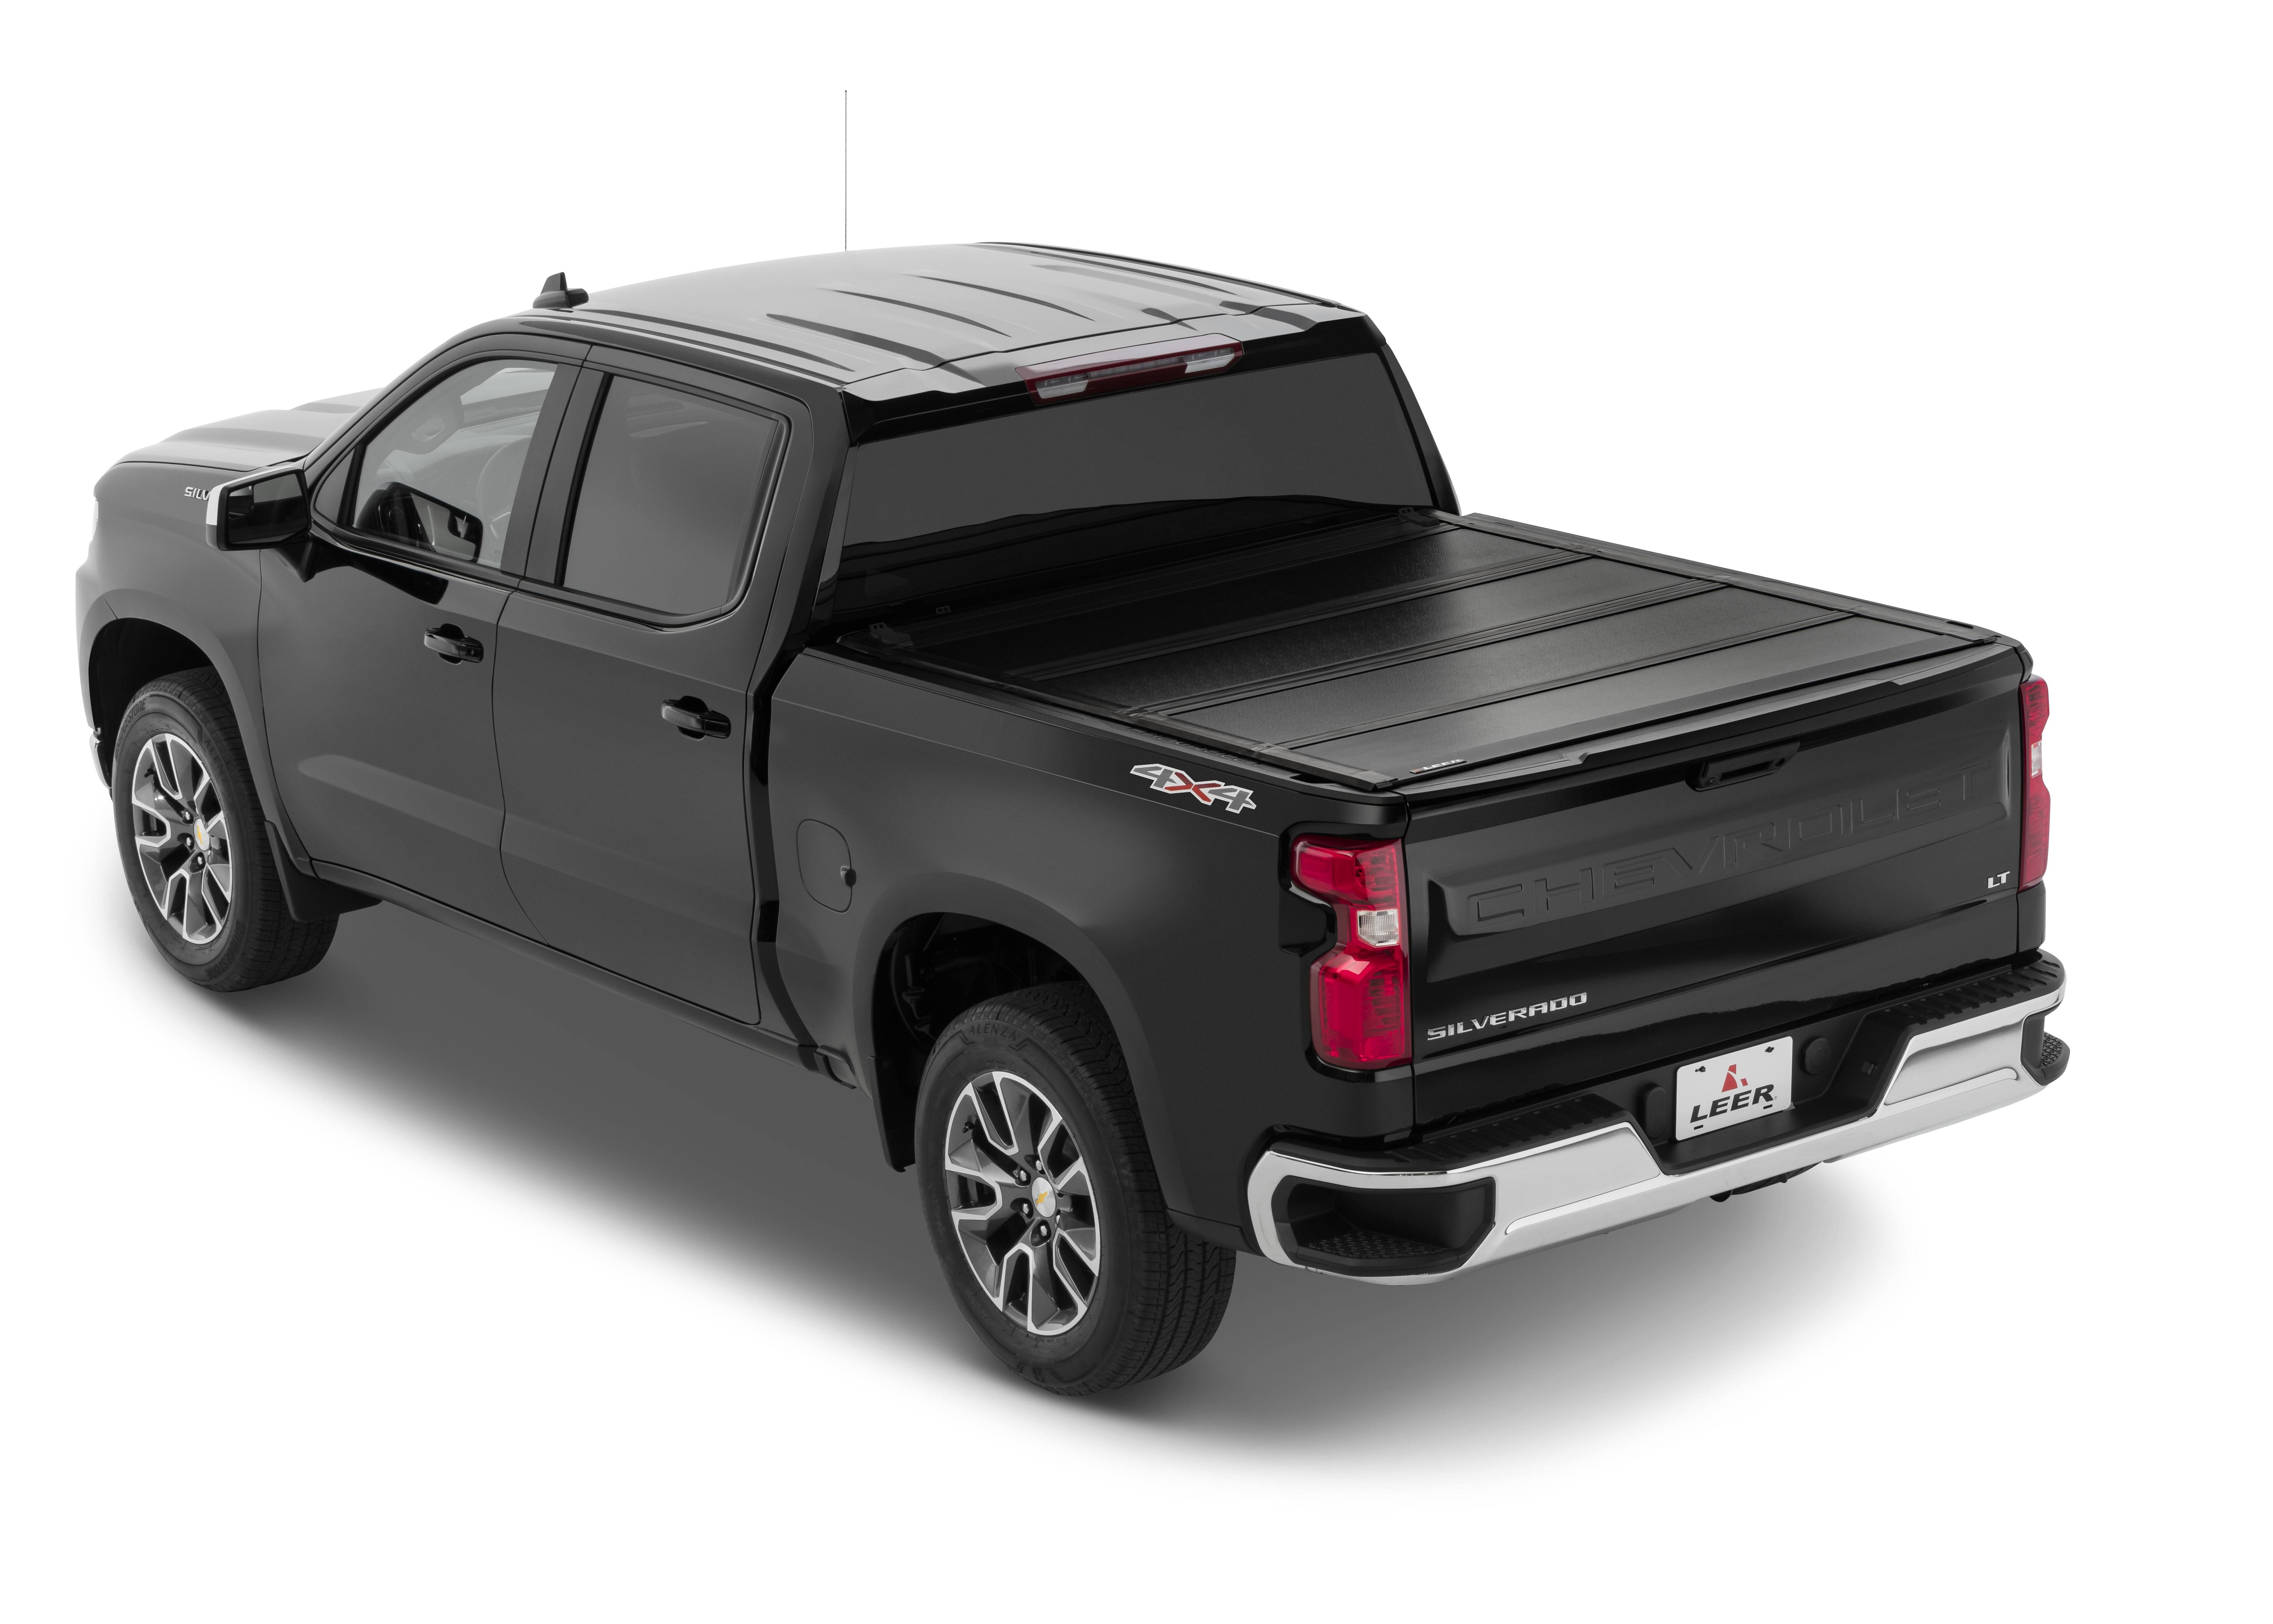 Leer Tonneau Covers And Truck Bed Covers Near Me Leer Com Tonneau Cover Hard Folding Tonneau Cover Truck Accessories